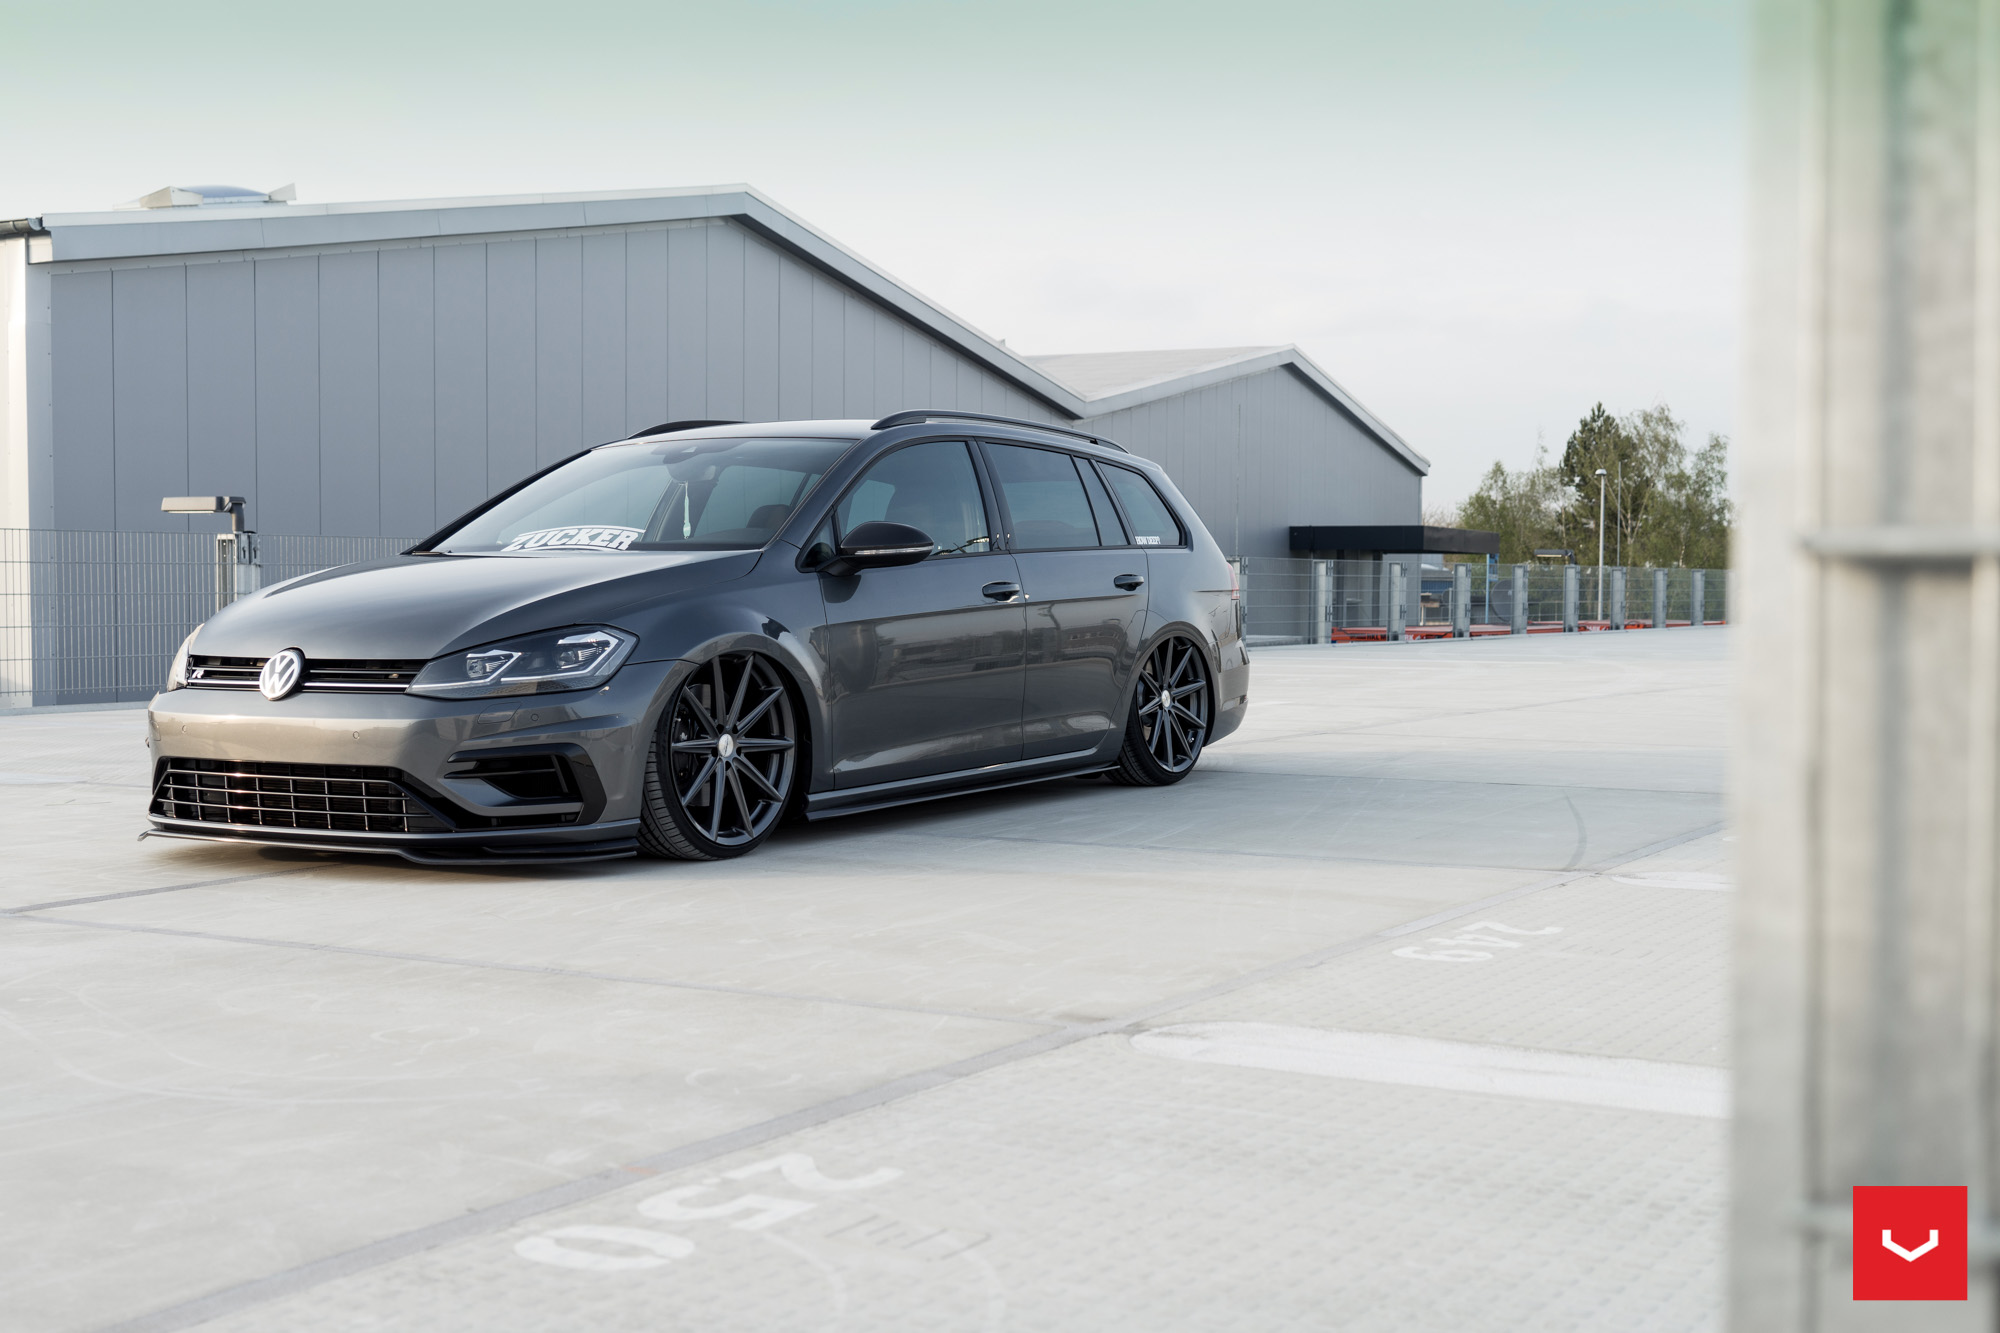 2017 golf r variant gets stanced on vossen wheels for. Black Bedroom Furniture Sets. Home Design Ideas